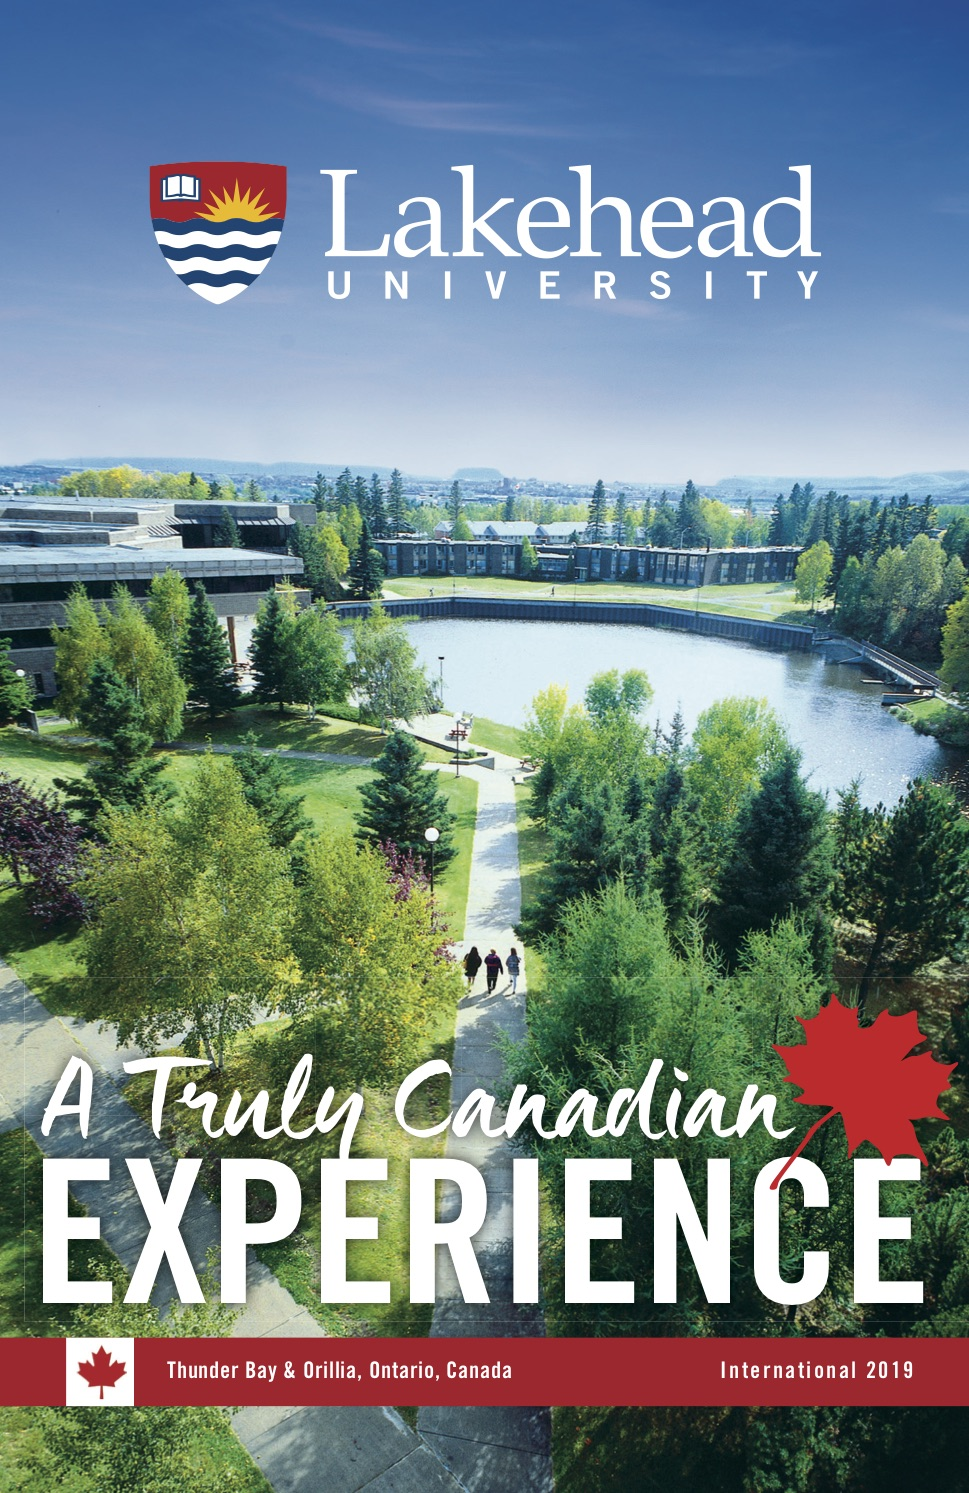 The cover of the 2019 Lakehead International Brochure in English.